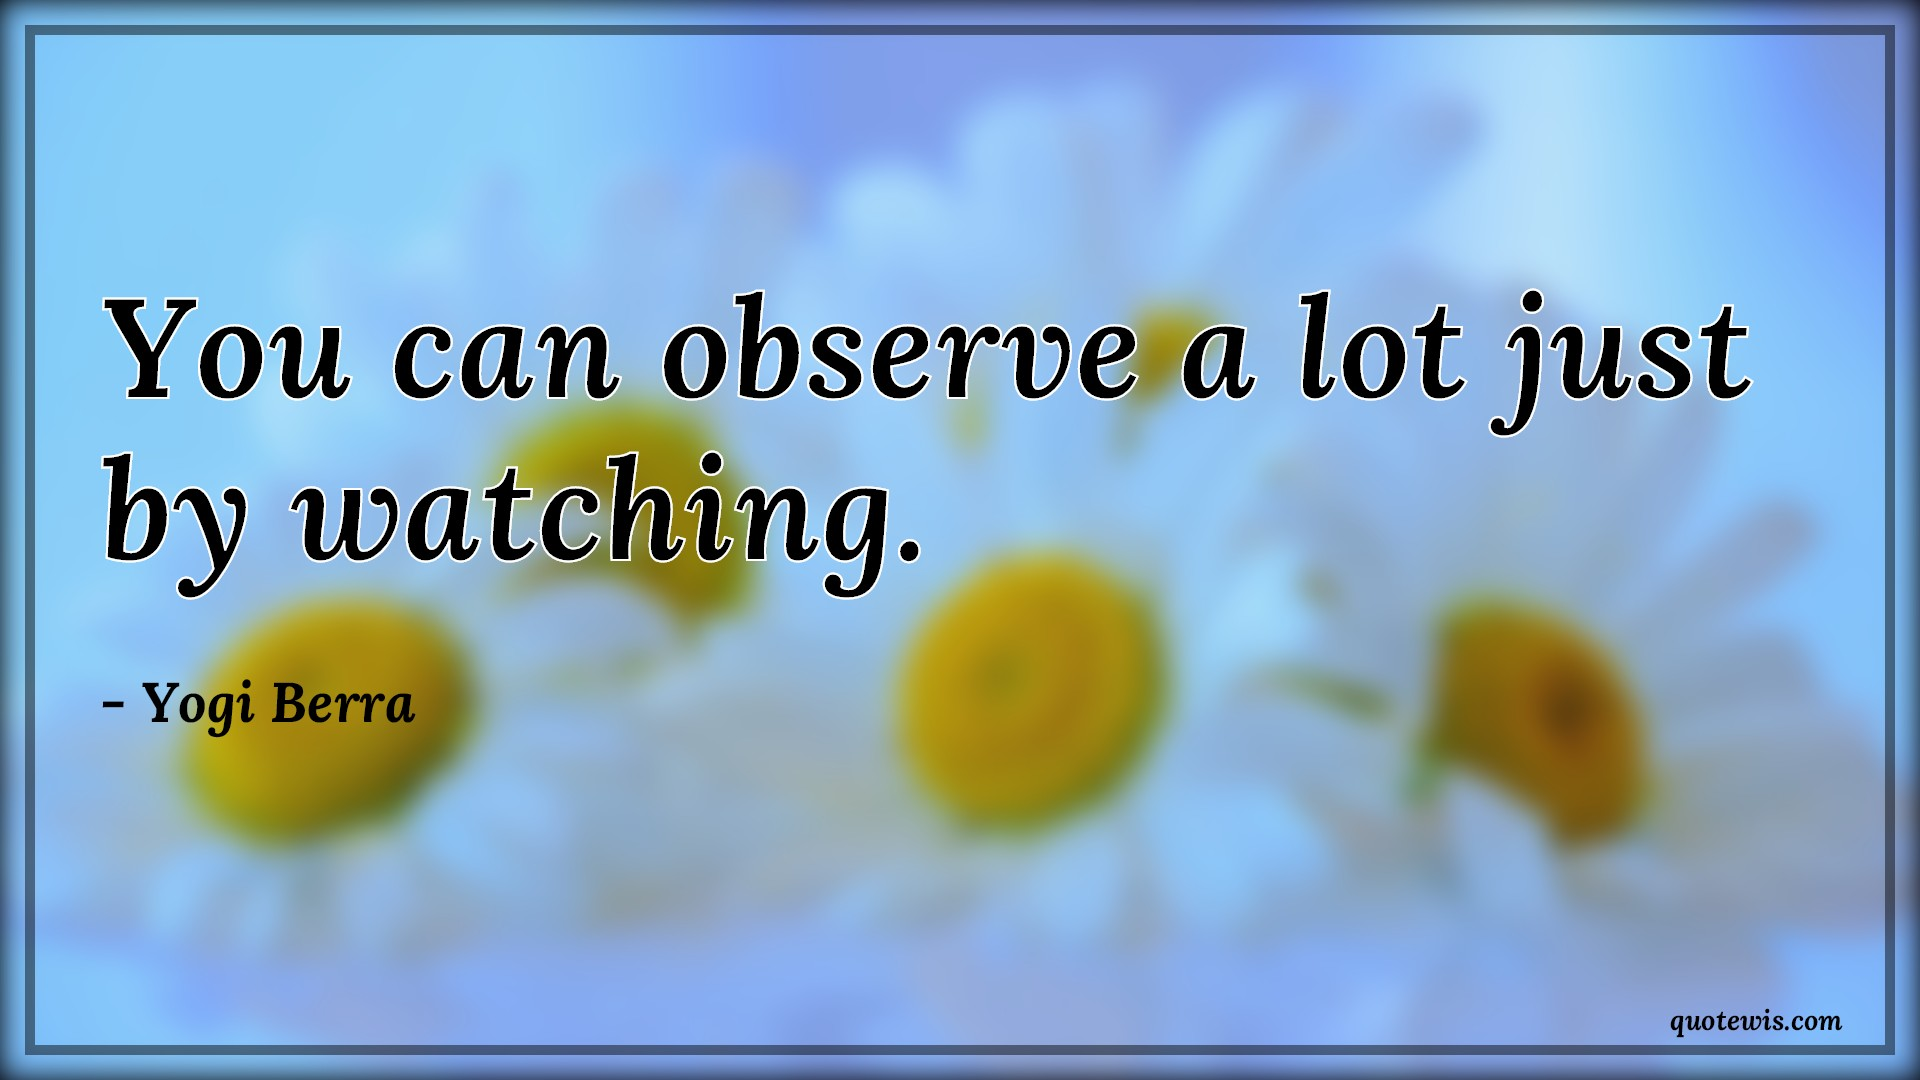 You can observe a lot just by watching.